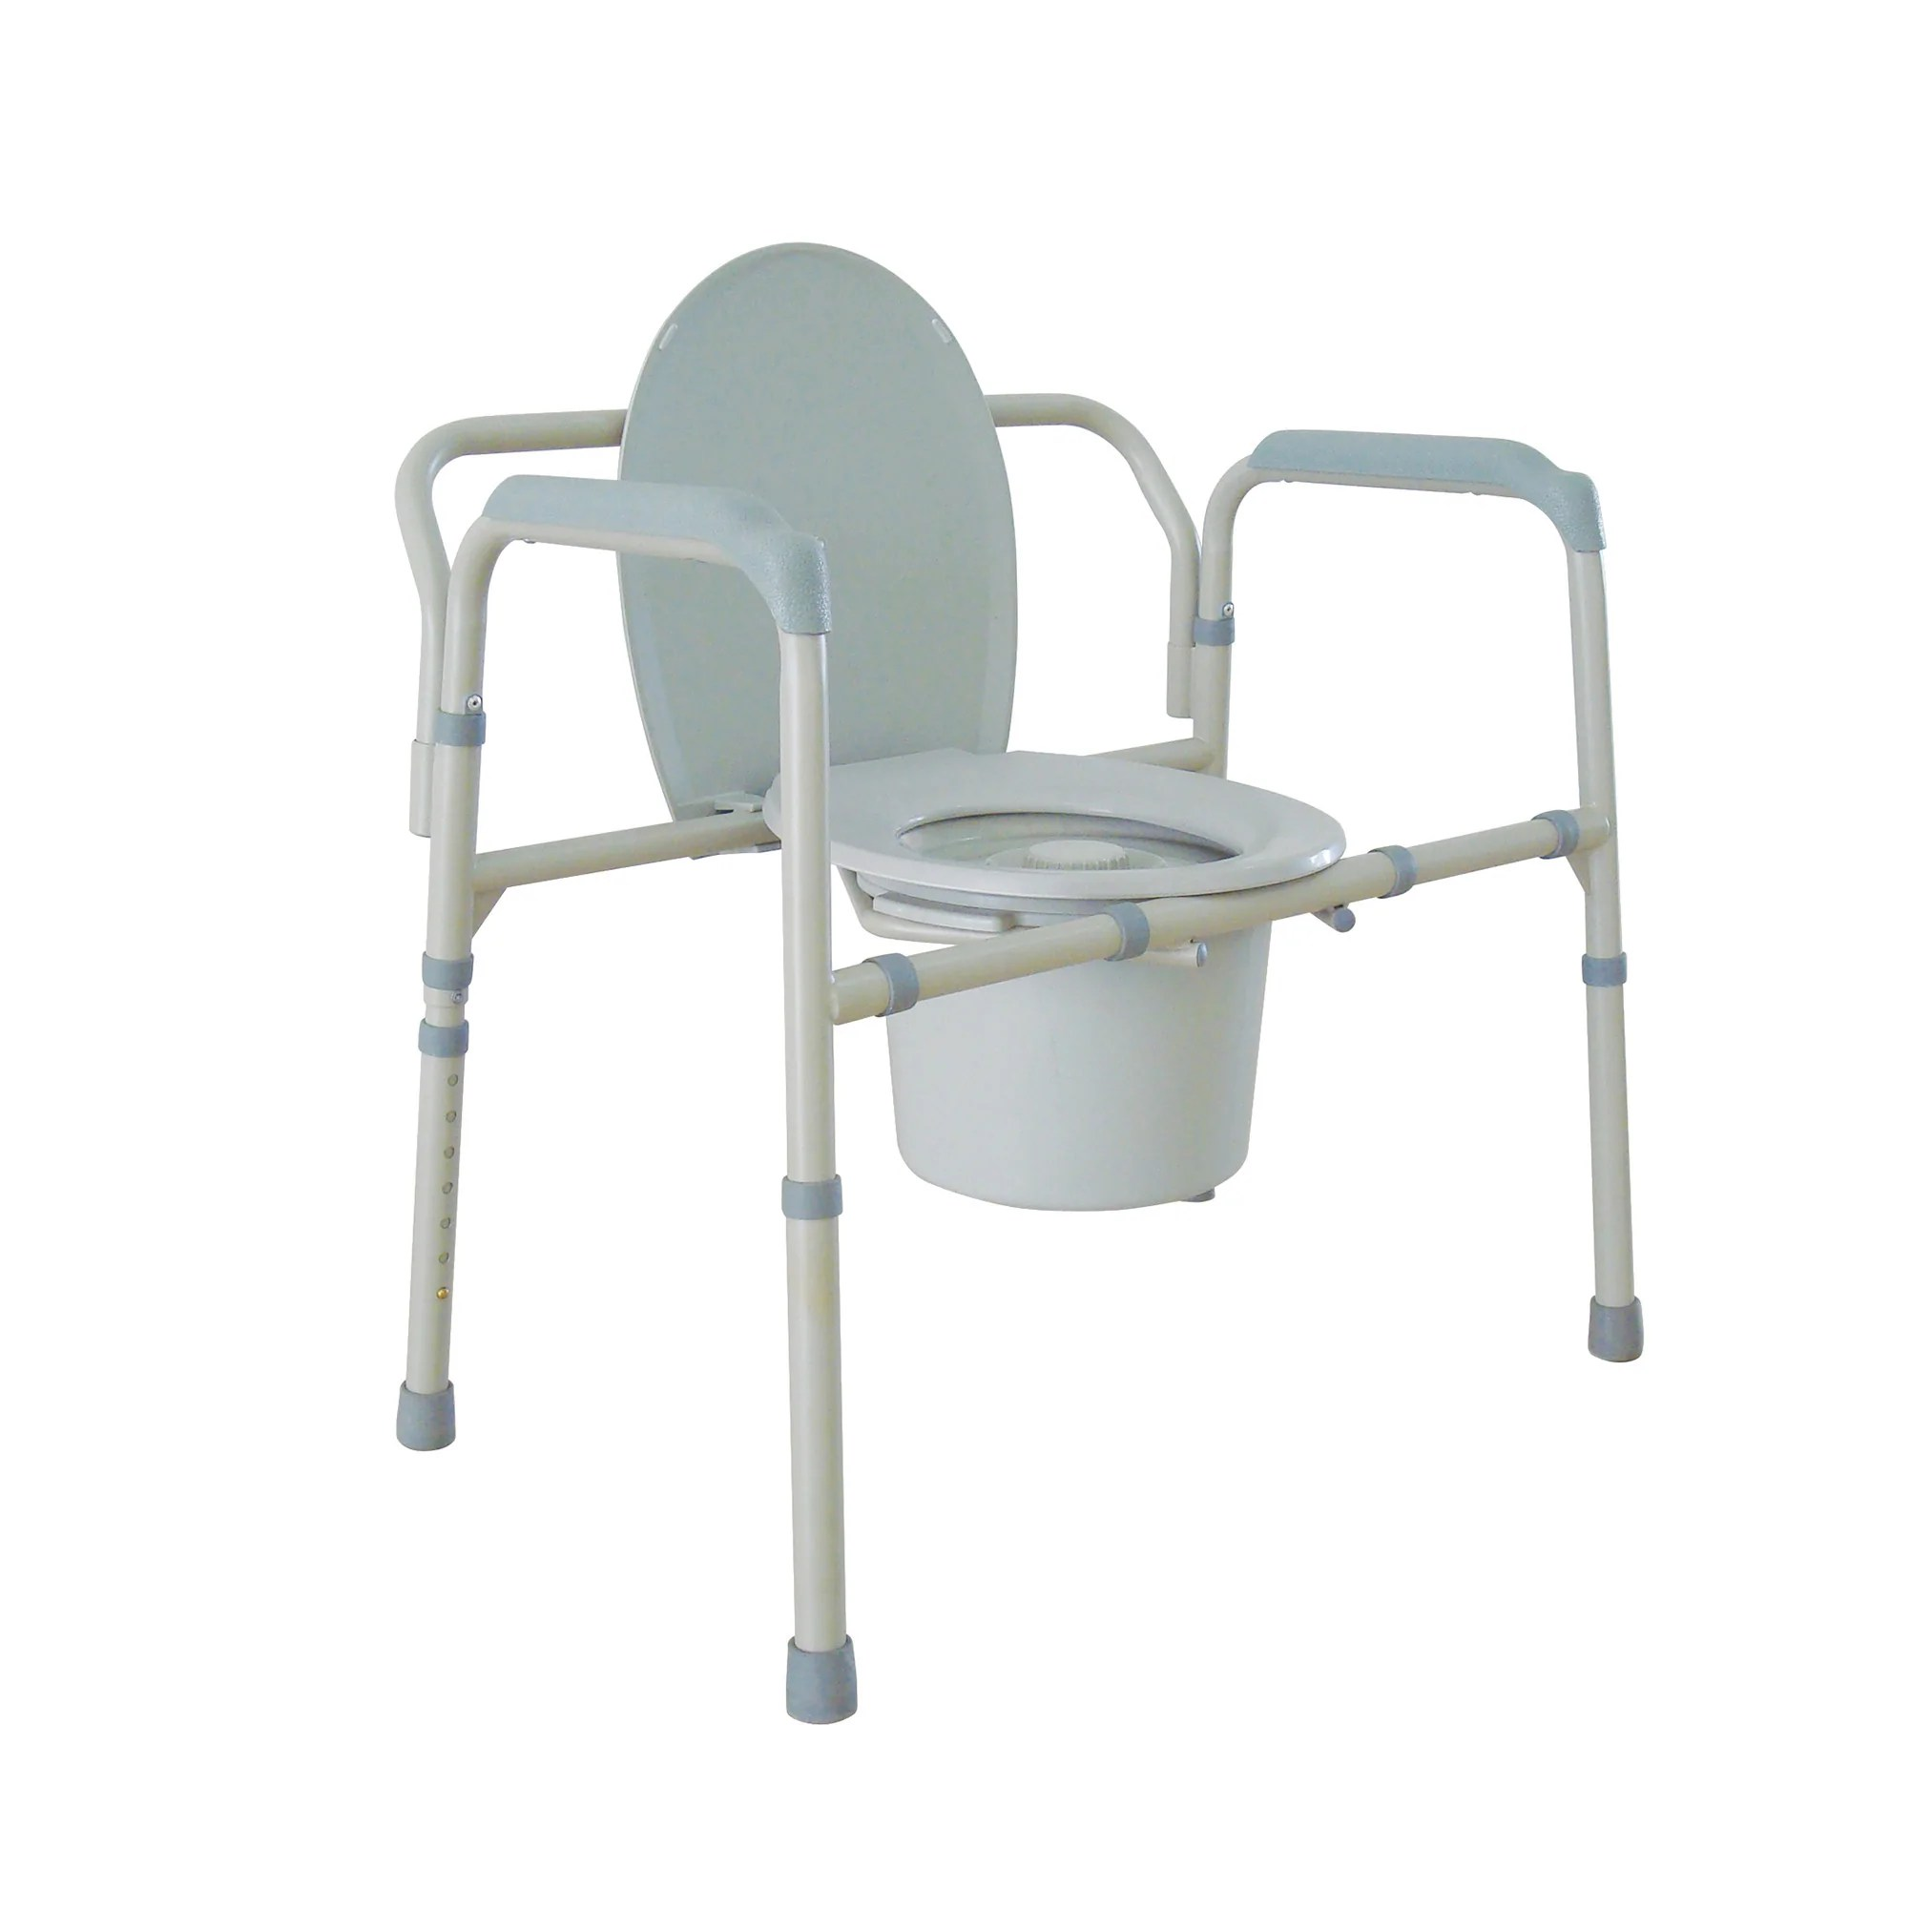 Bedside Commode Chair Heavy Duty Bariatric Folding Bedside Commode Chair Csa